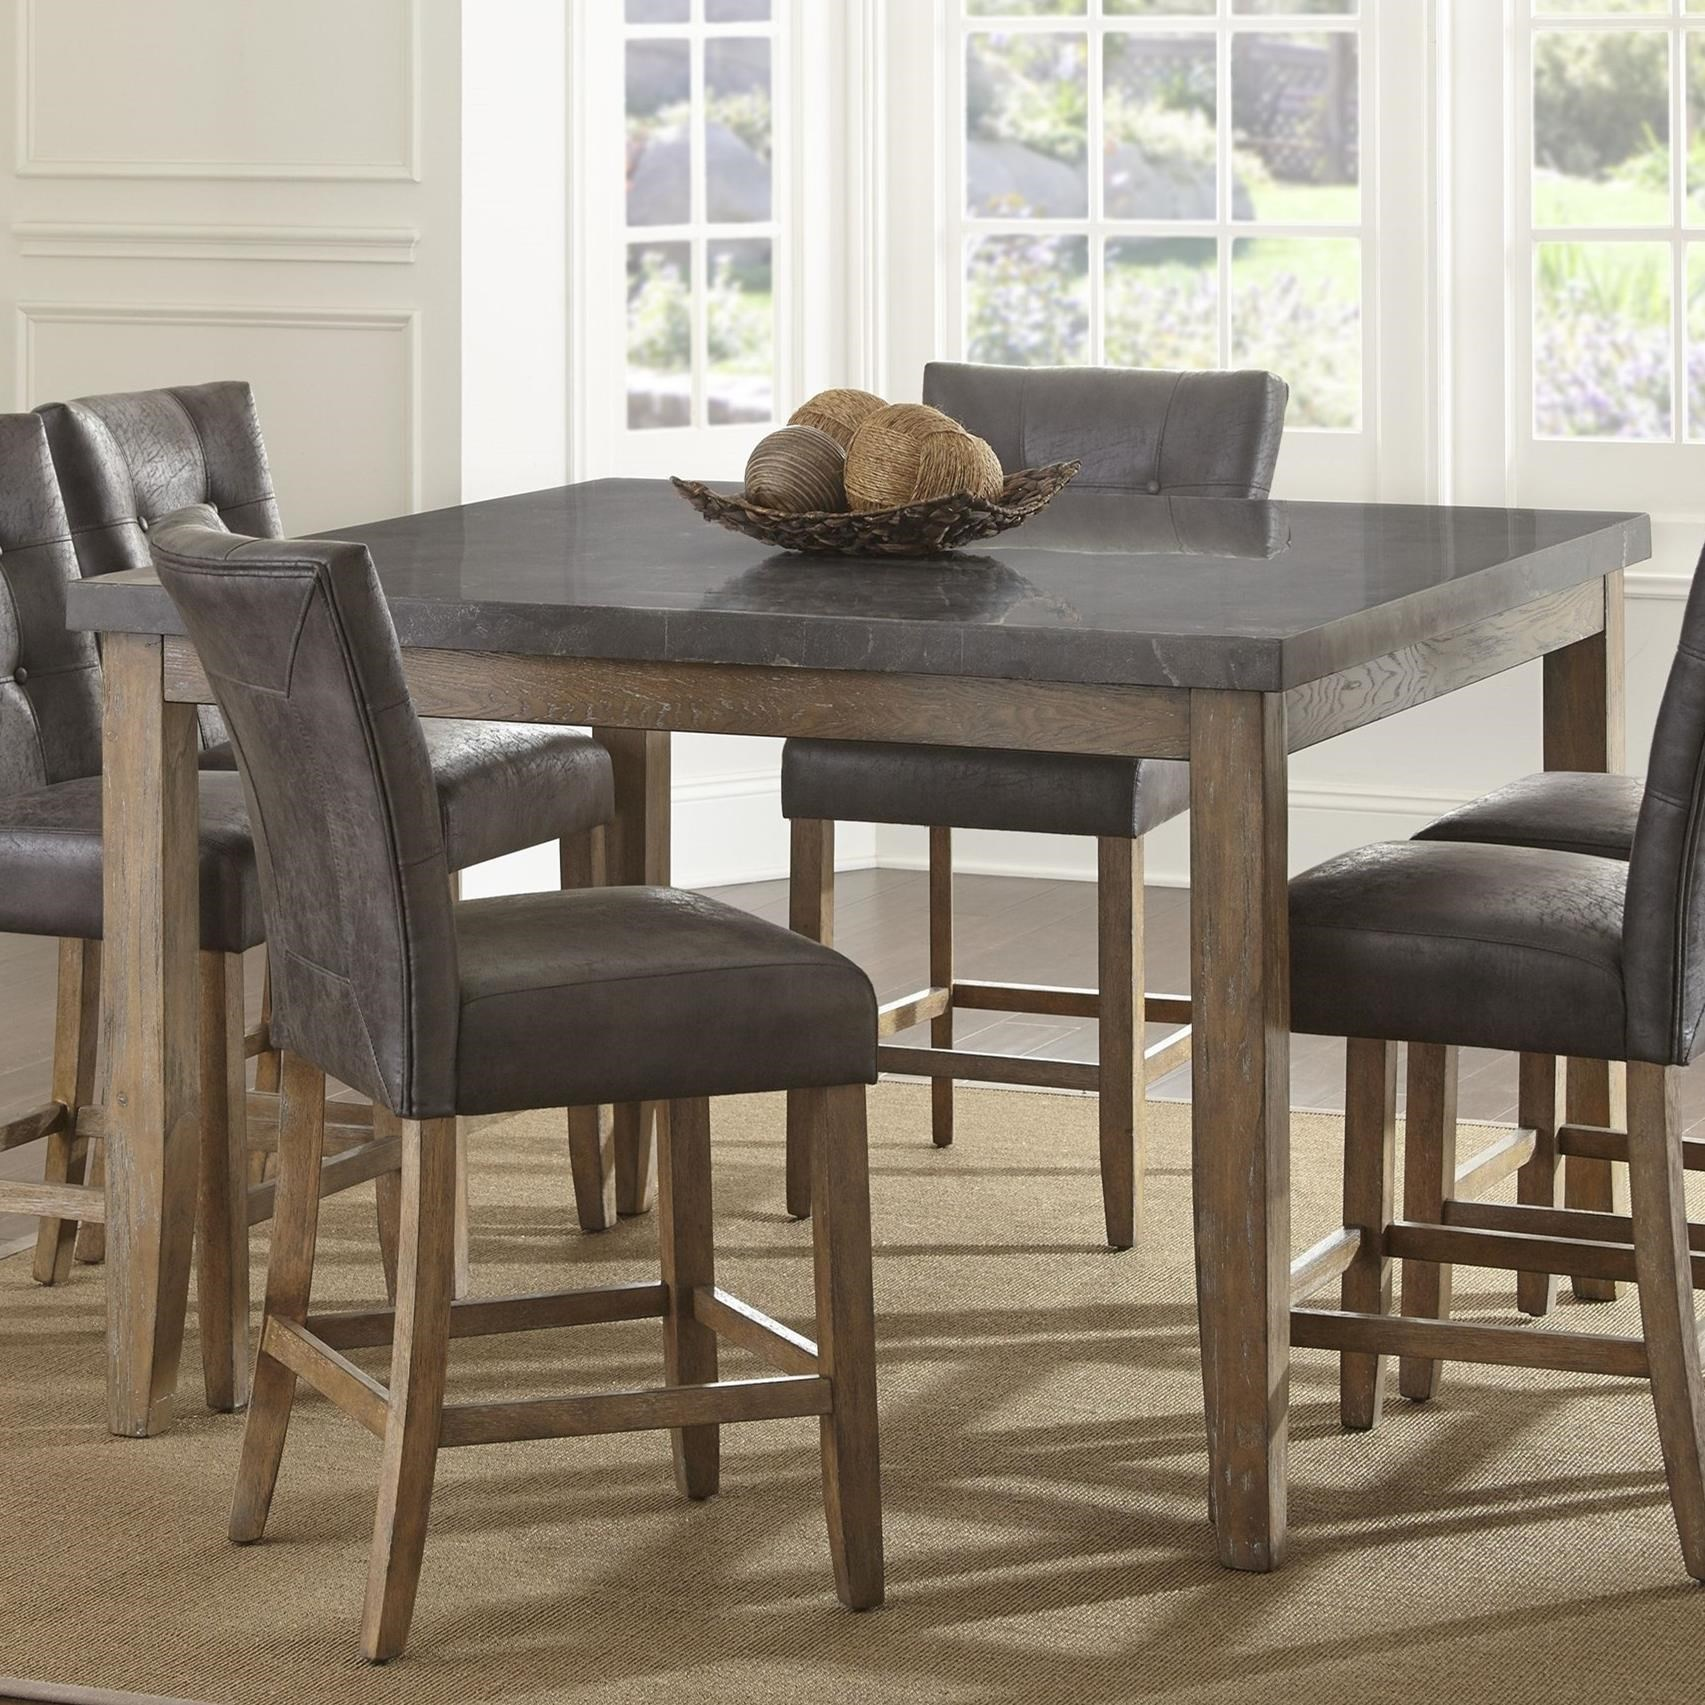 Steve Silver Debby Transitional Square Counter Height Dining Table With  Bluestone Top